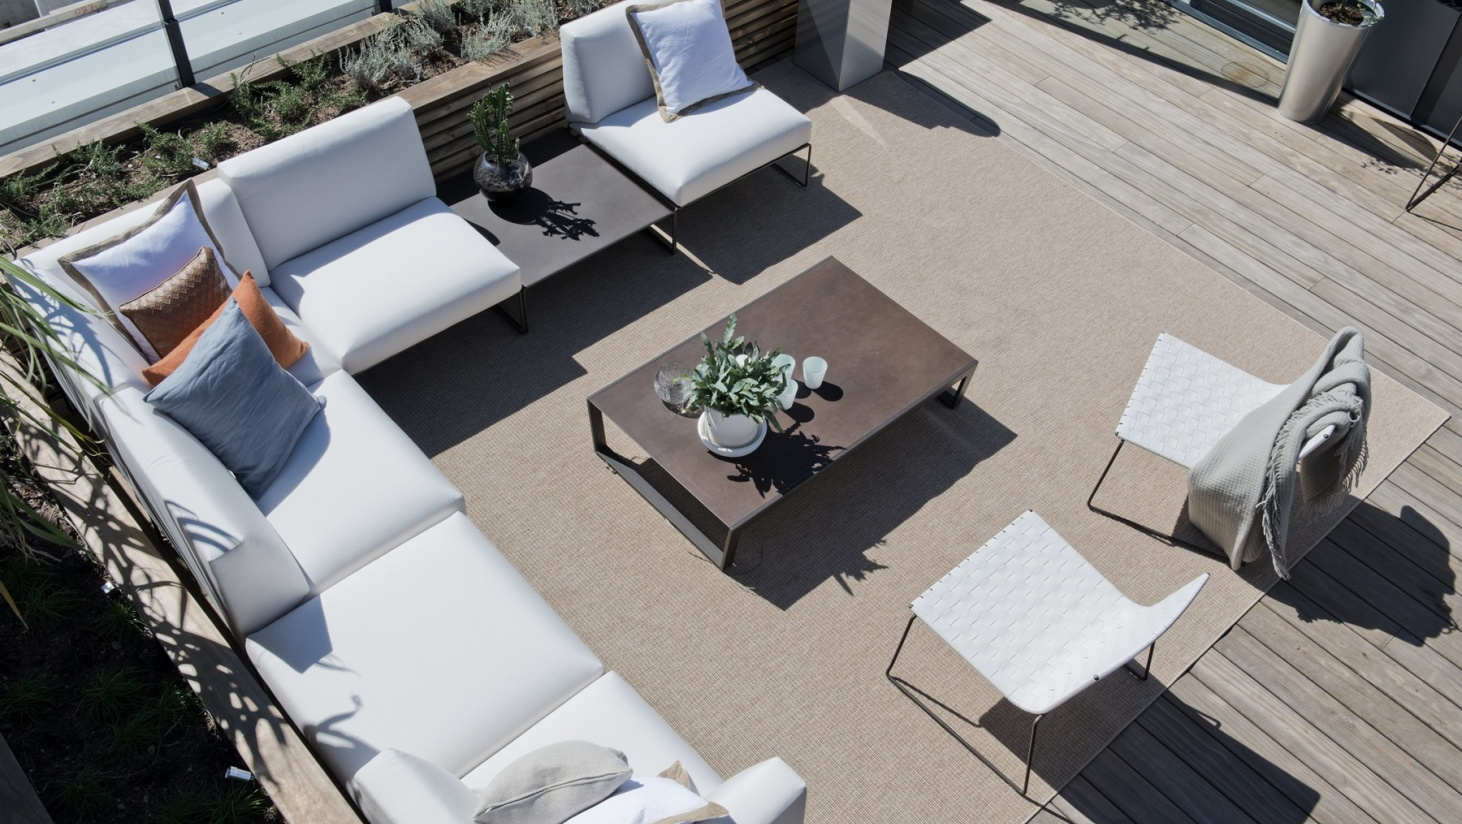 5 Green Rooftop Deck Design Ideas | | The Garden and Patio ...